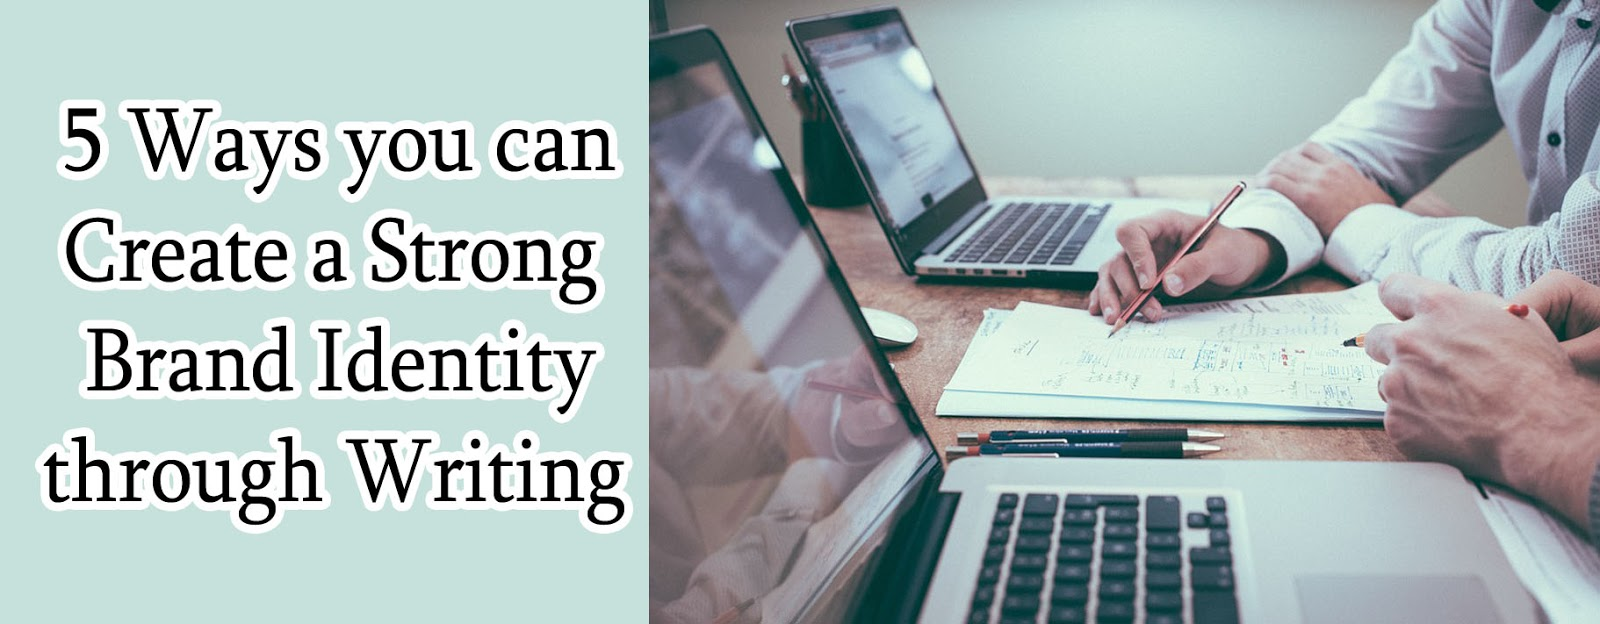 5 Ways you can Create a Strong Brand Identity through Writing